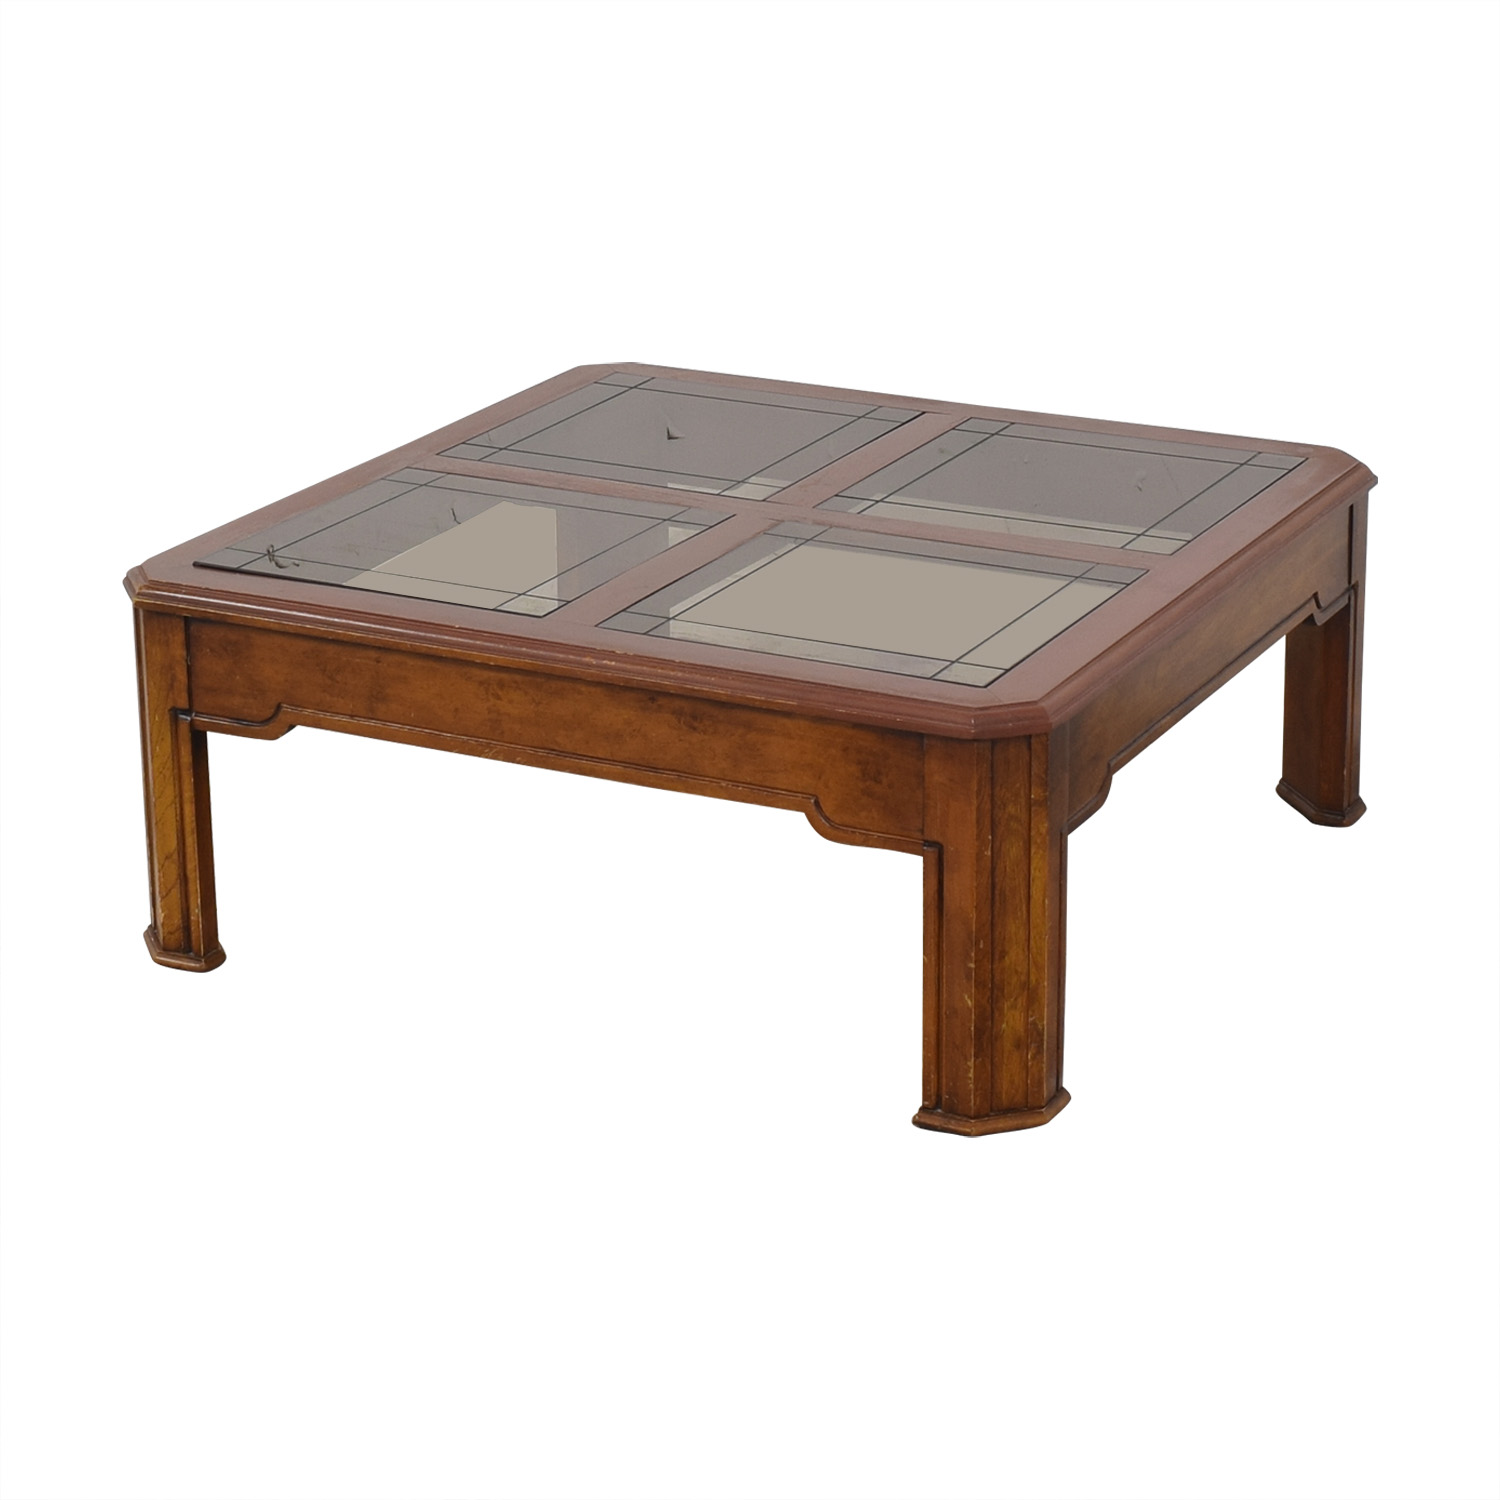 Huffman Koos Square Coffee Table / Tables